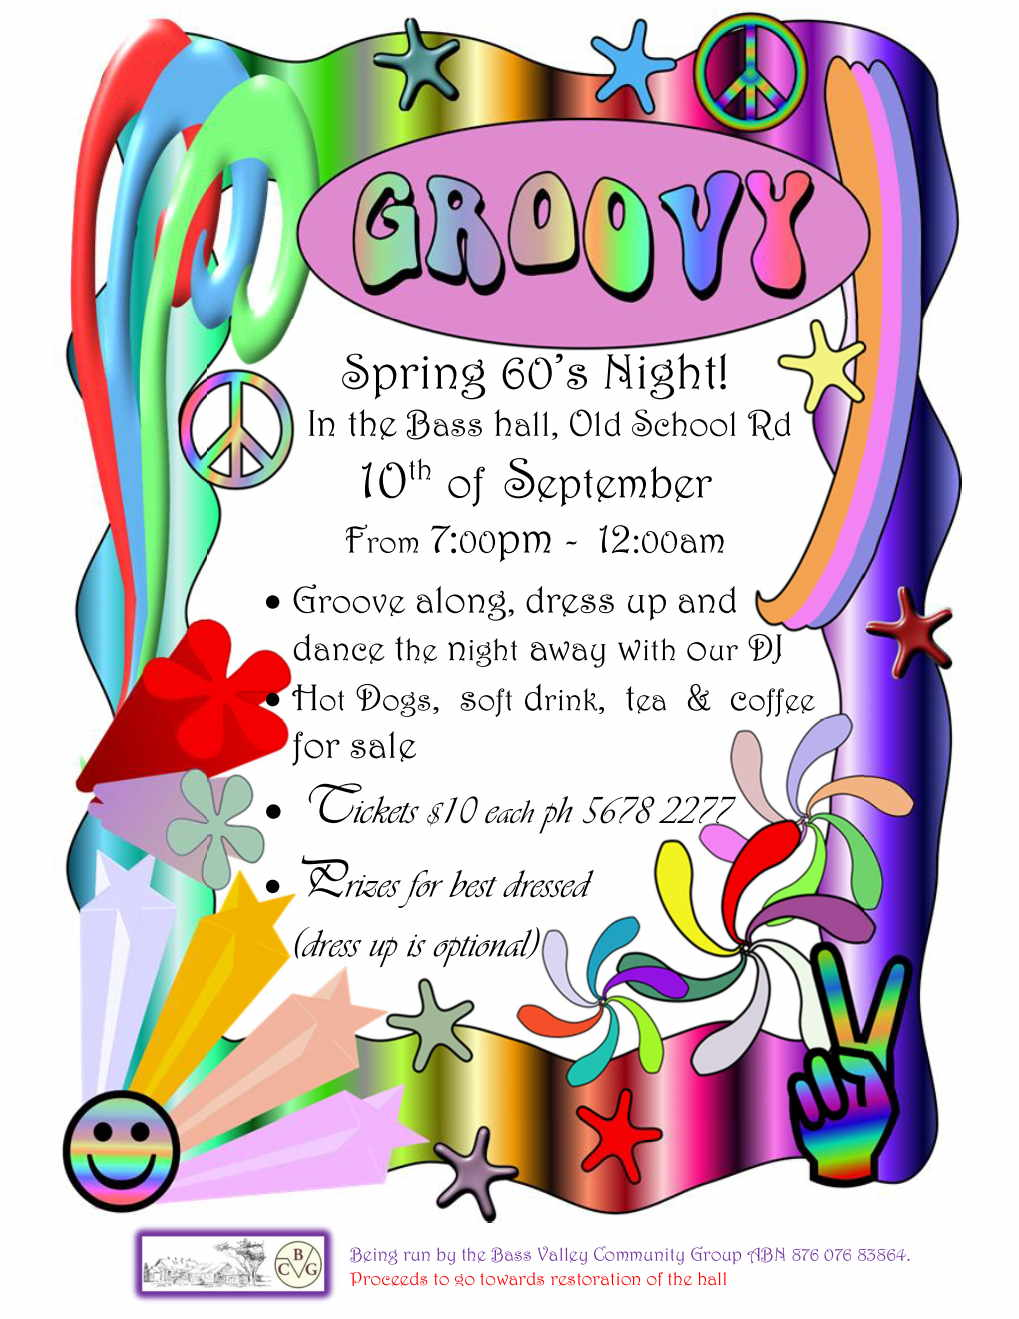 Spring 60s Dance Night Event HotDogs Drinks Tea Coffee